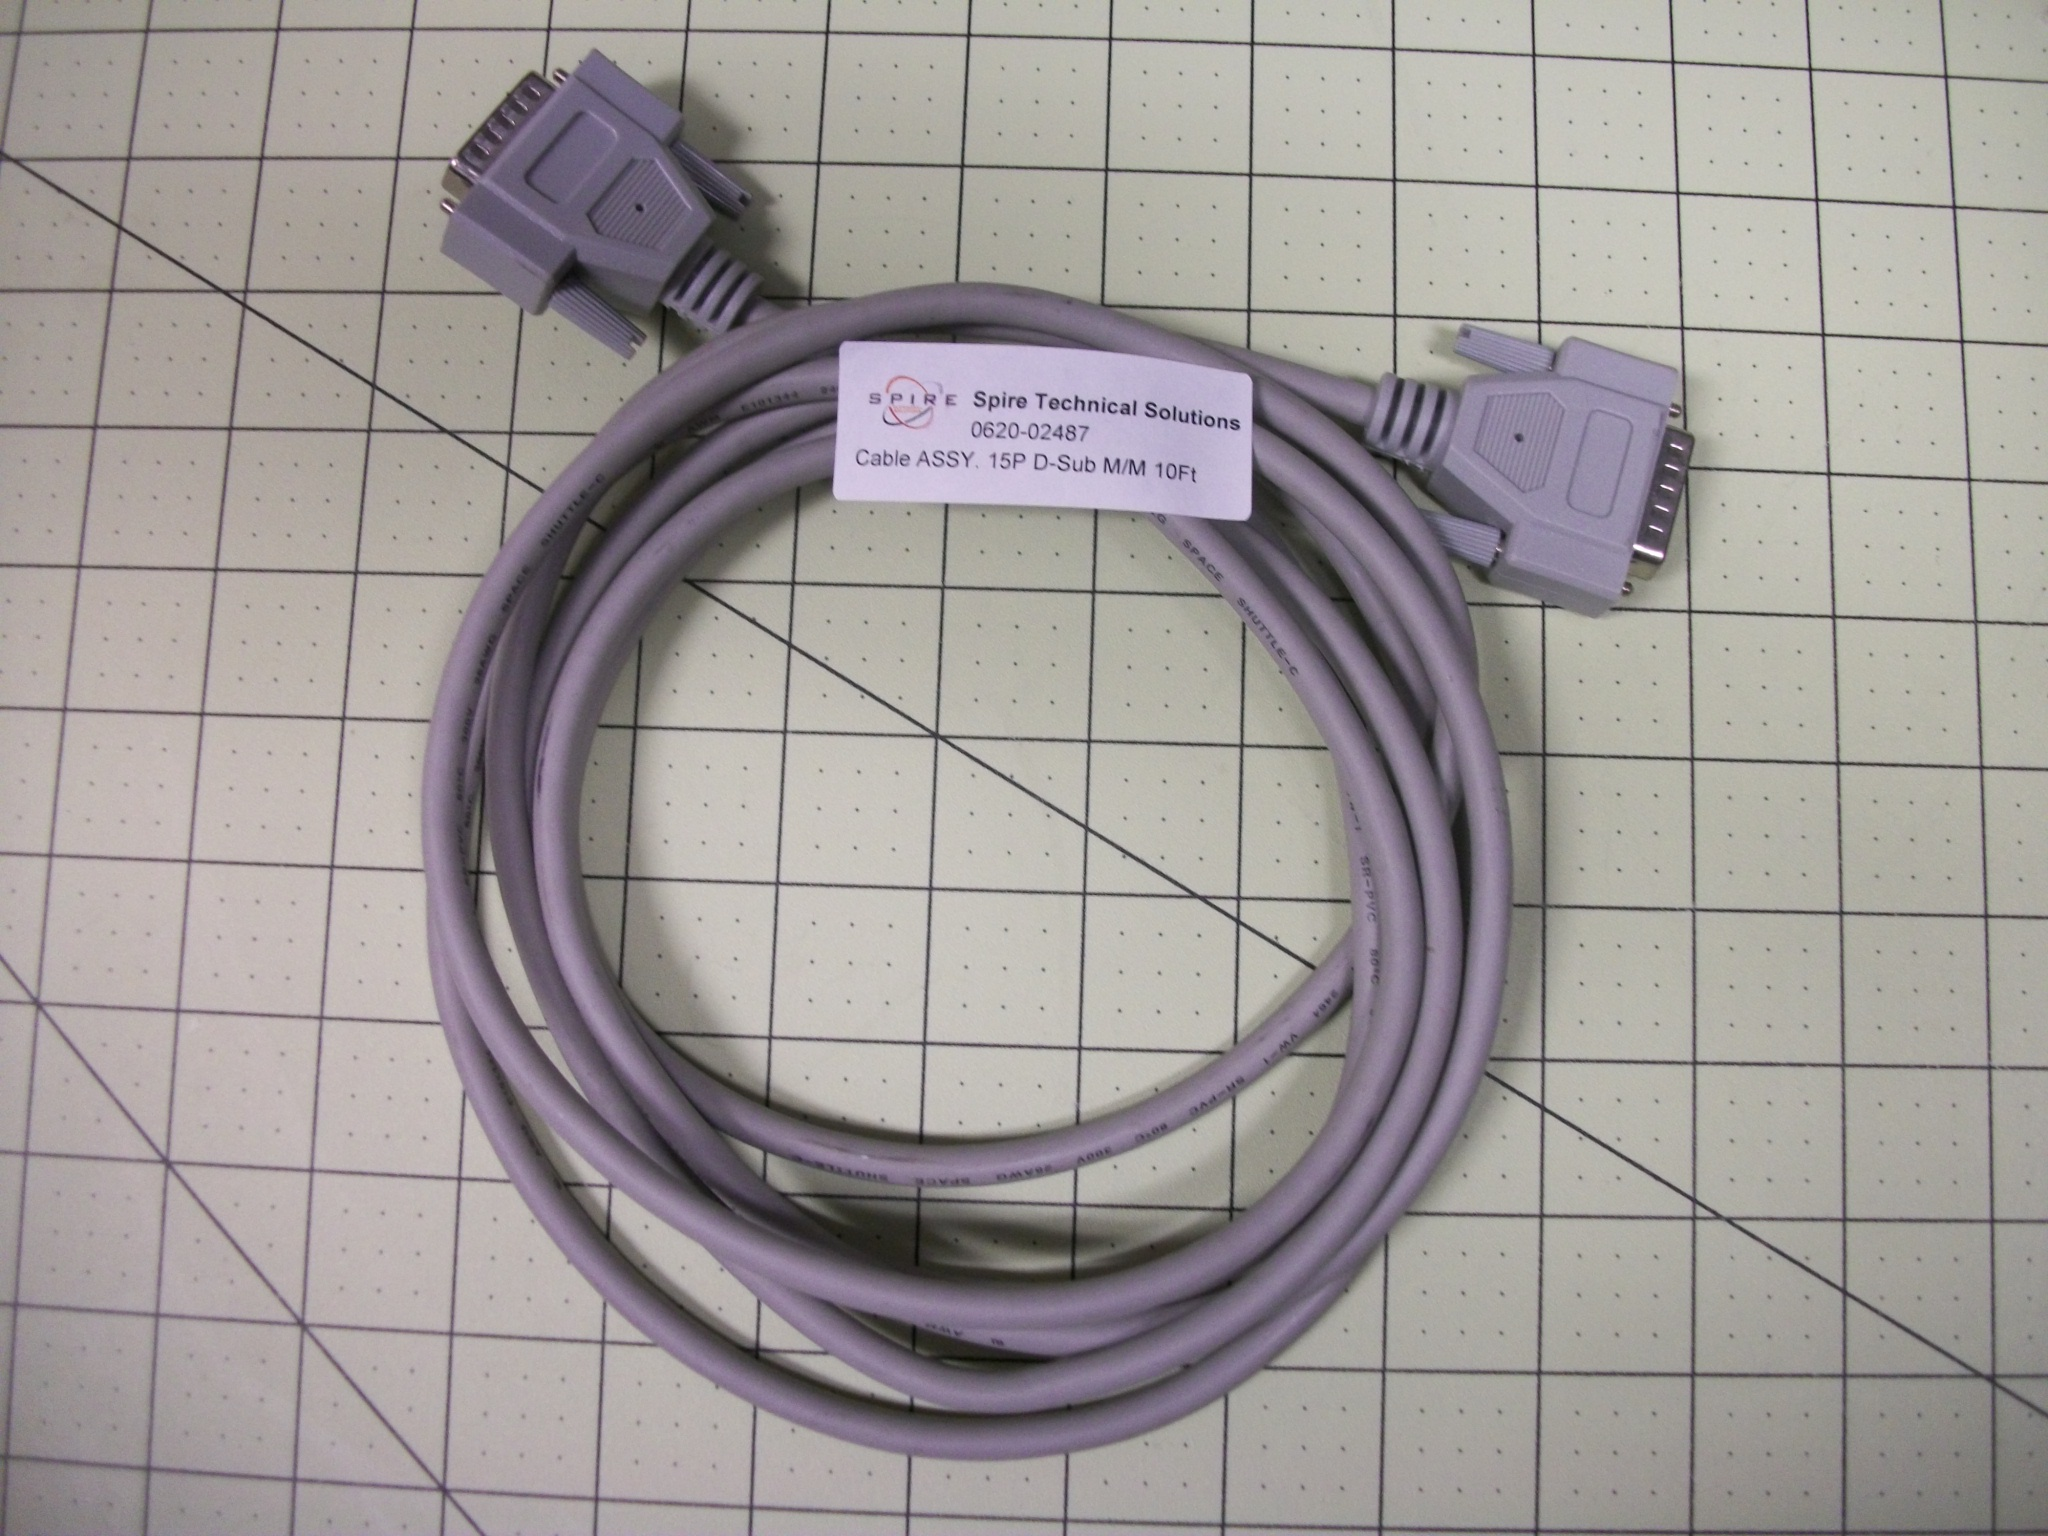 Cable ASSY. 15P D-Sub M/M 10Ft